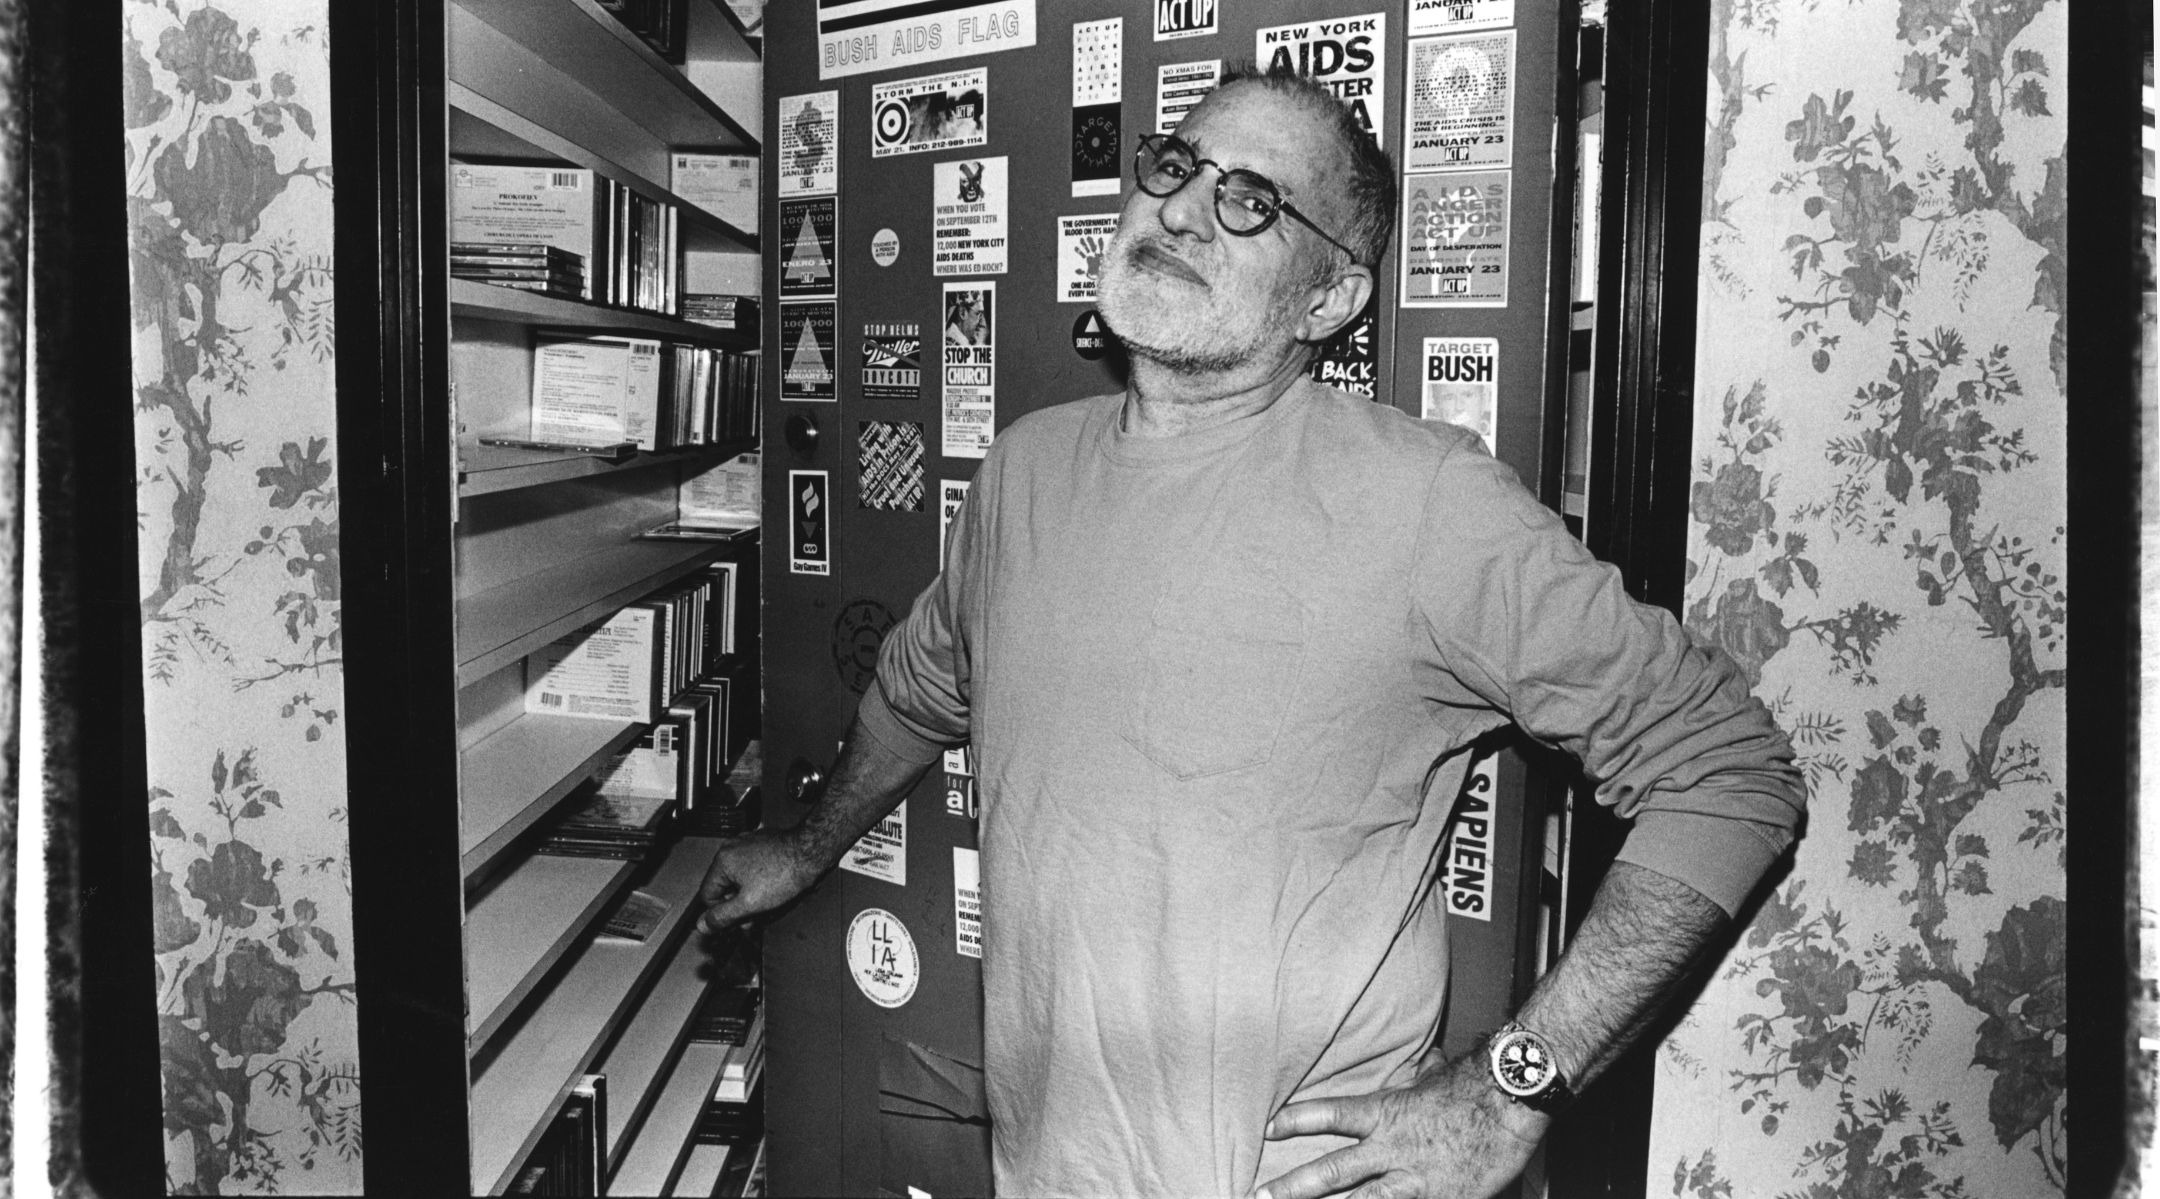 Prominent AIDS activist Larry Kramer dies at 84